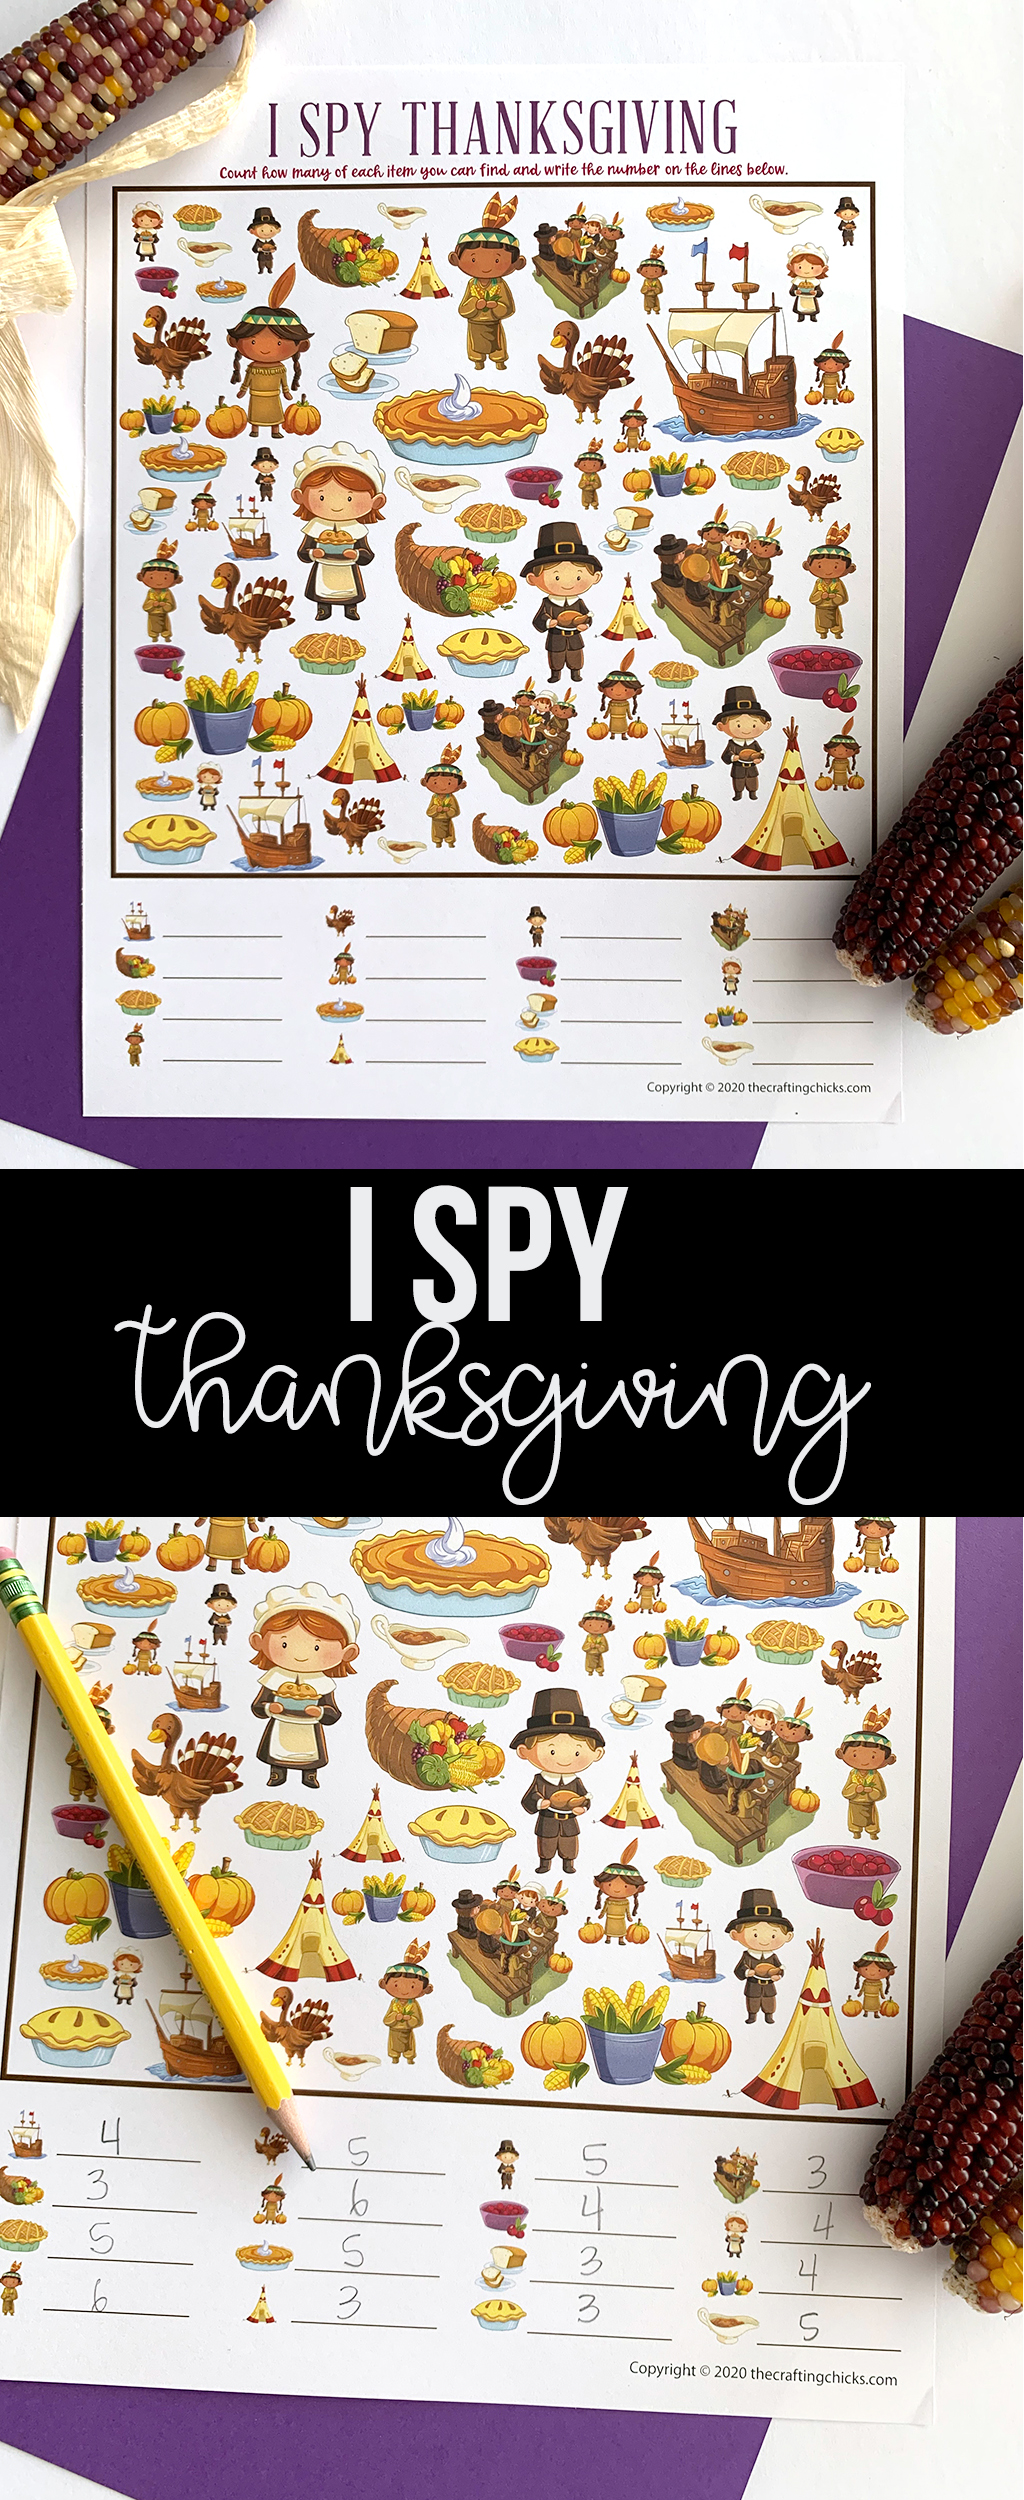 Keep those kids, big and small, busy with our Thanksgiving I-Spy Free Printable Game. Perfect for before or after the turkey, or anytime during the month of November. #thanksgiving #thanksgivingprintables #thanksgivingprintablegame